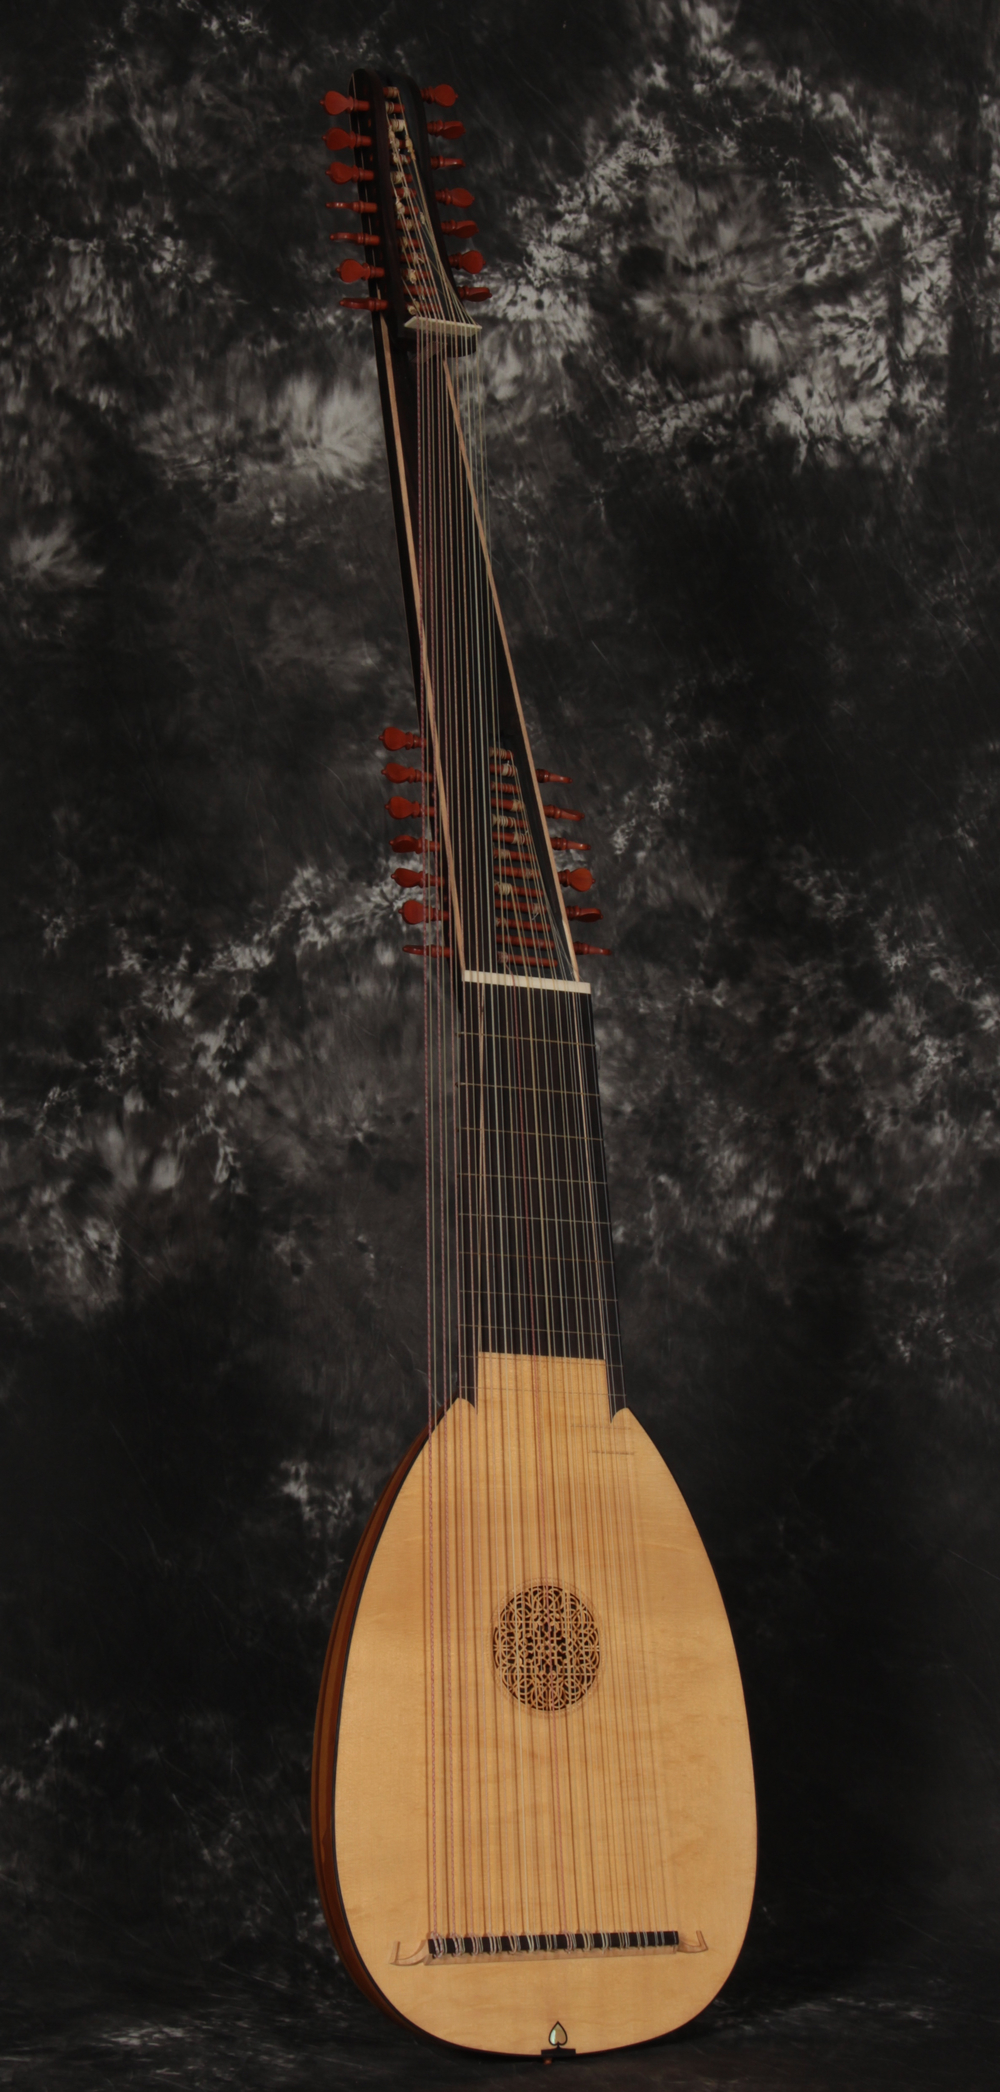 A liuto attiorbato with a Venere model, 61cm body and 120cm extension, fourteen double courses. Twenty one shaded yew ribs, Italian Alpine figured spruce front, ebony veneered neck and extension.